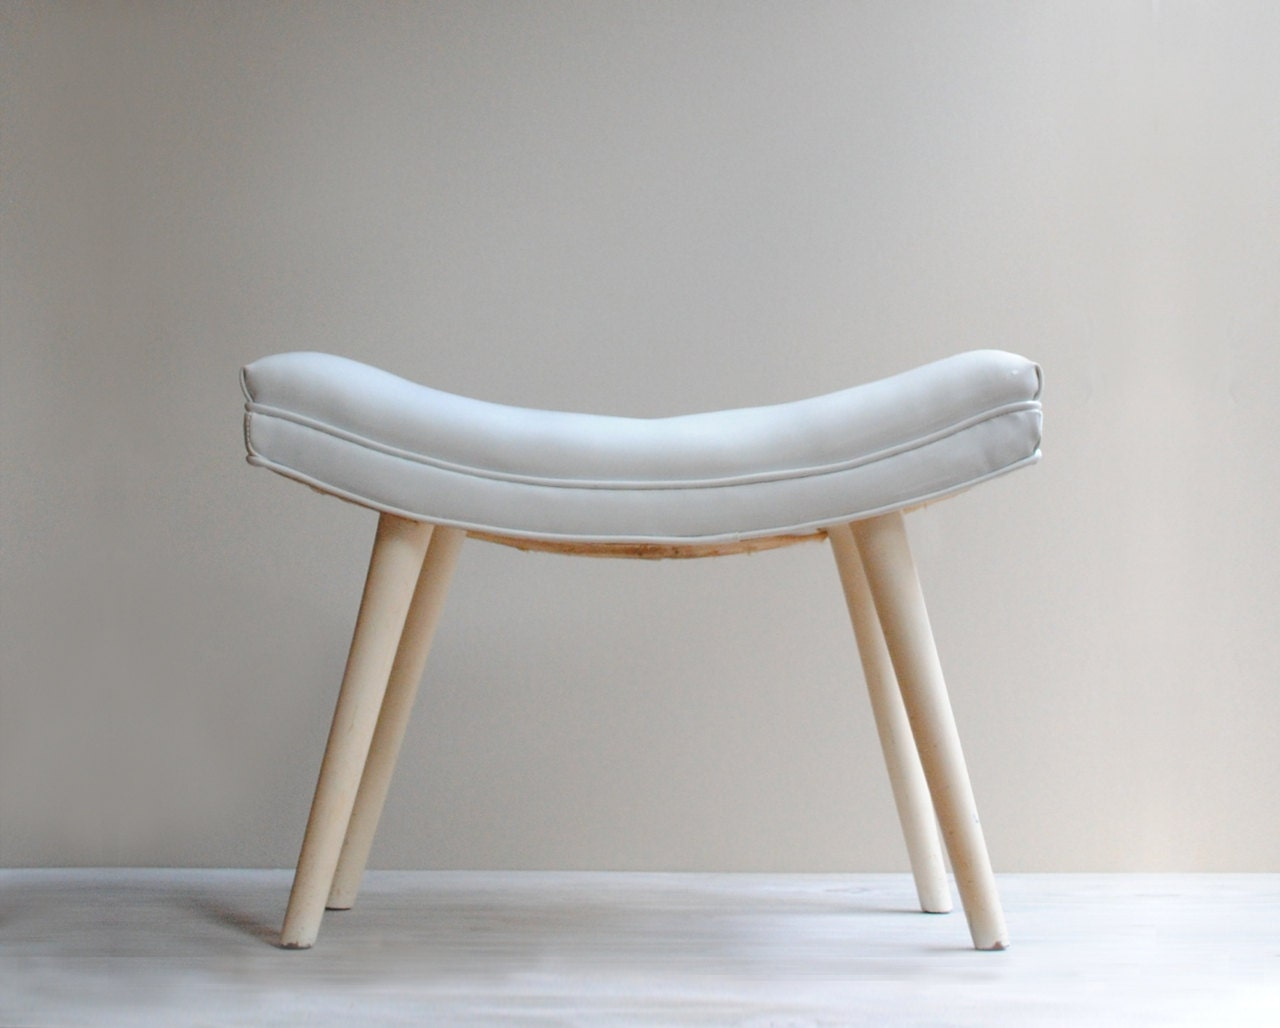 Vintage Tufted Ottoman Bench In White